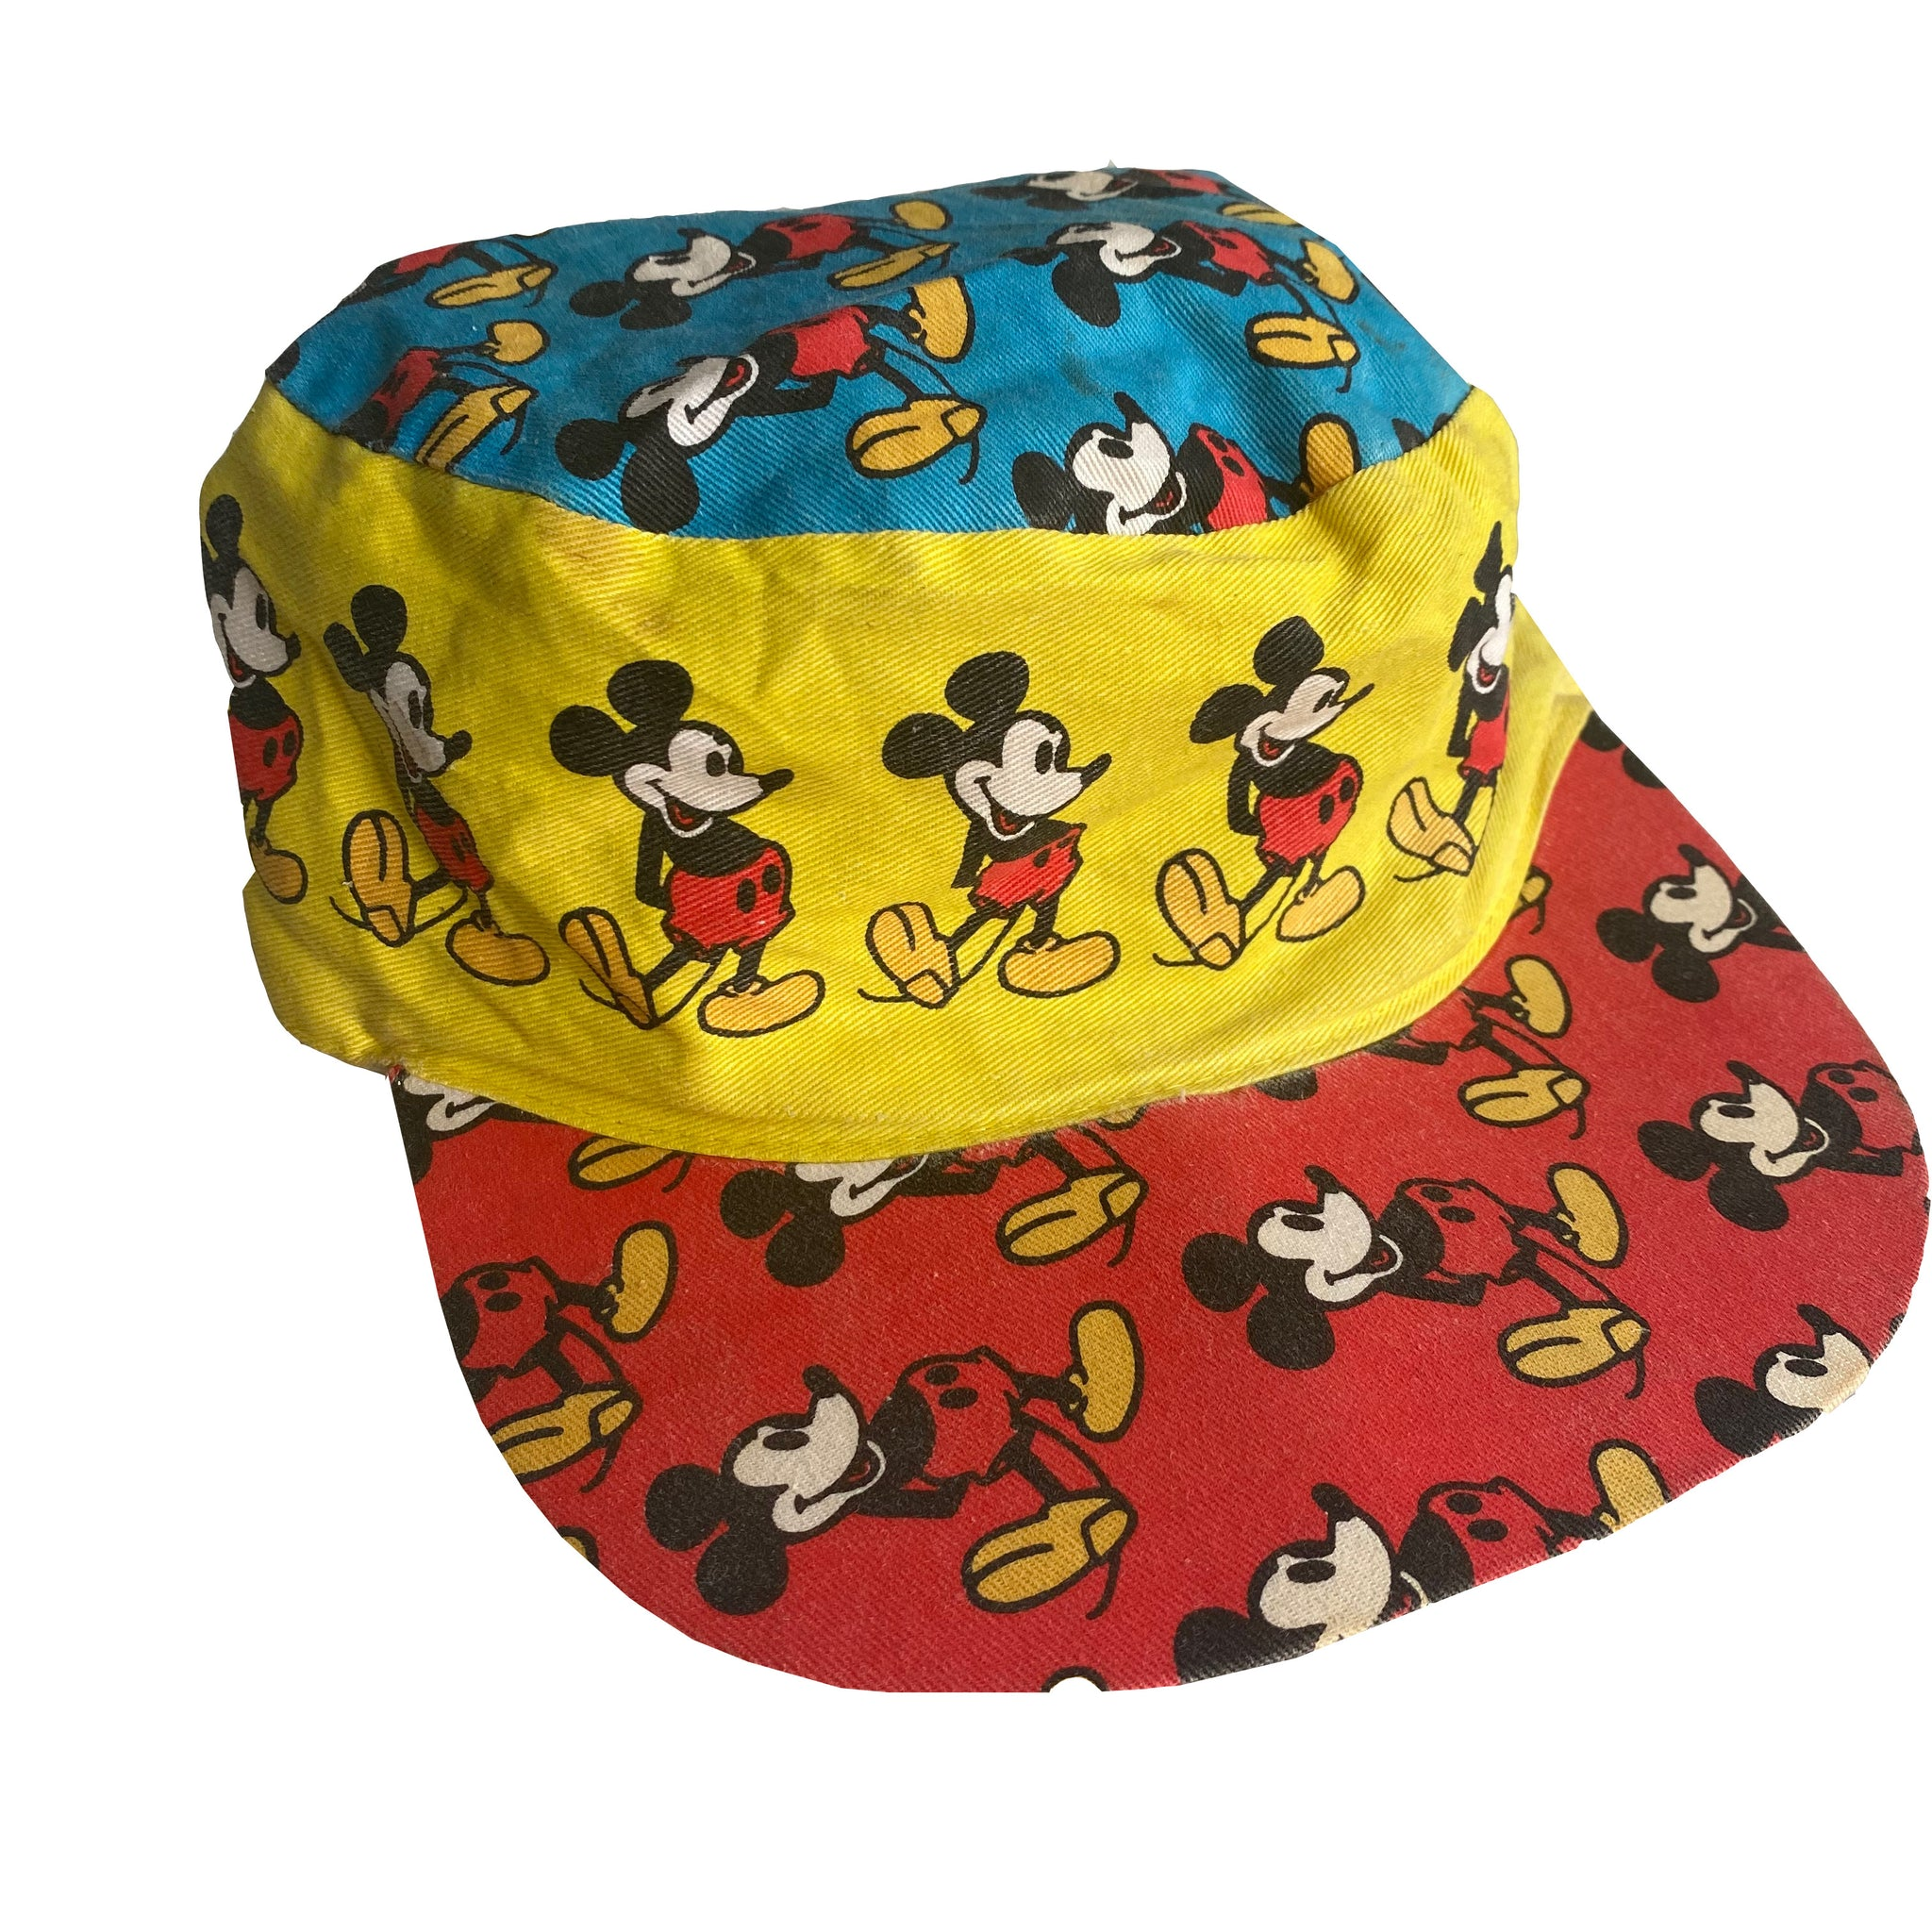 Mickey Painter's cap - VTG 80s